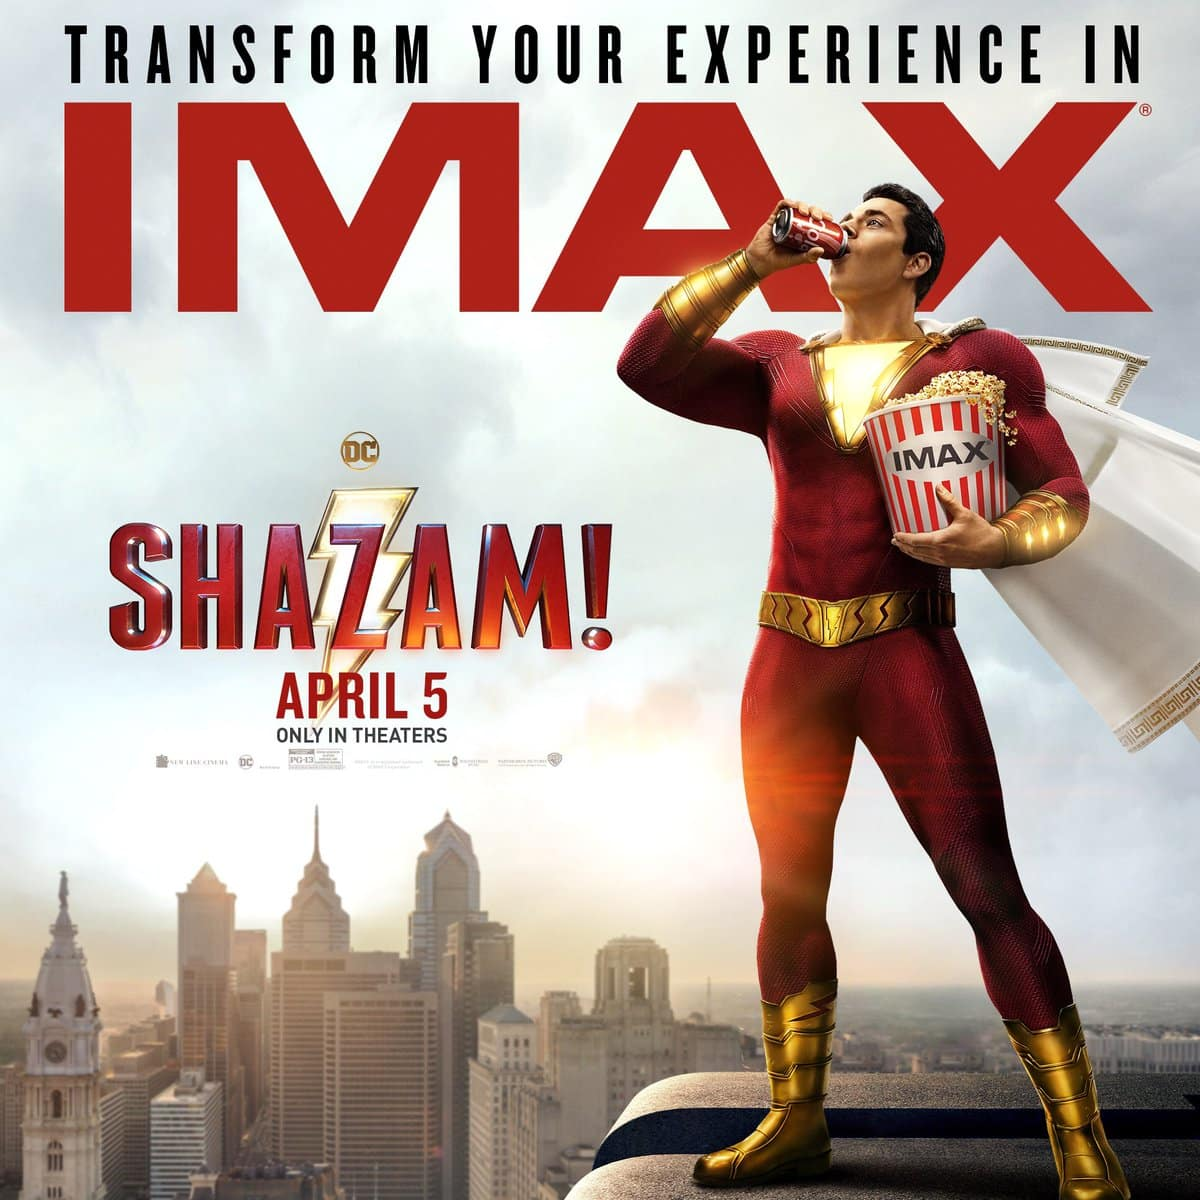 IMAX Shares New Exclusive Artwork for Shazam!